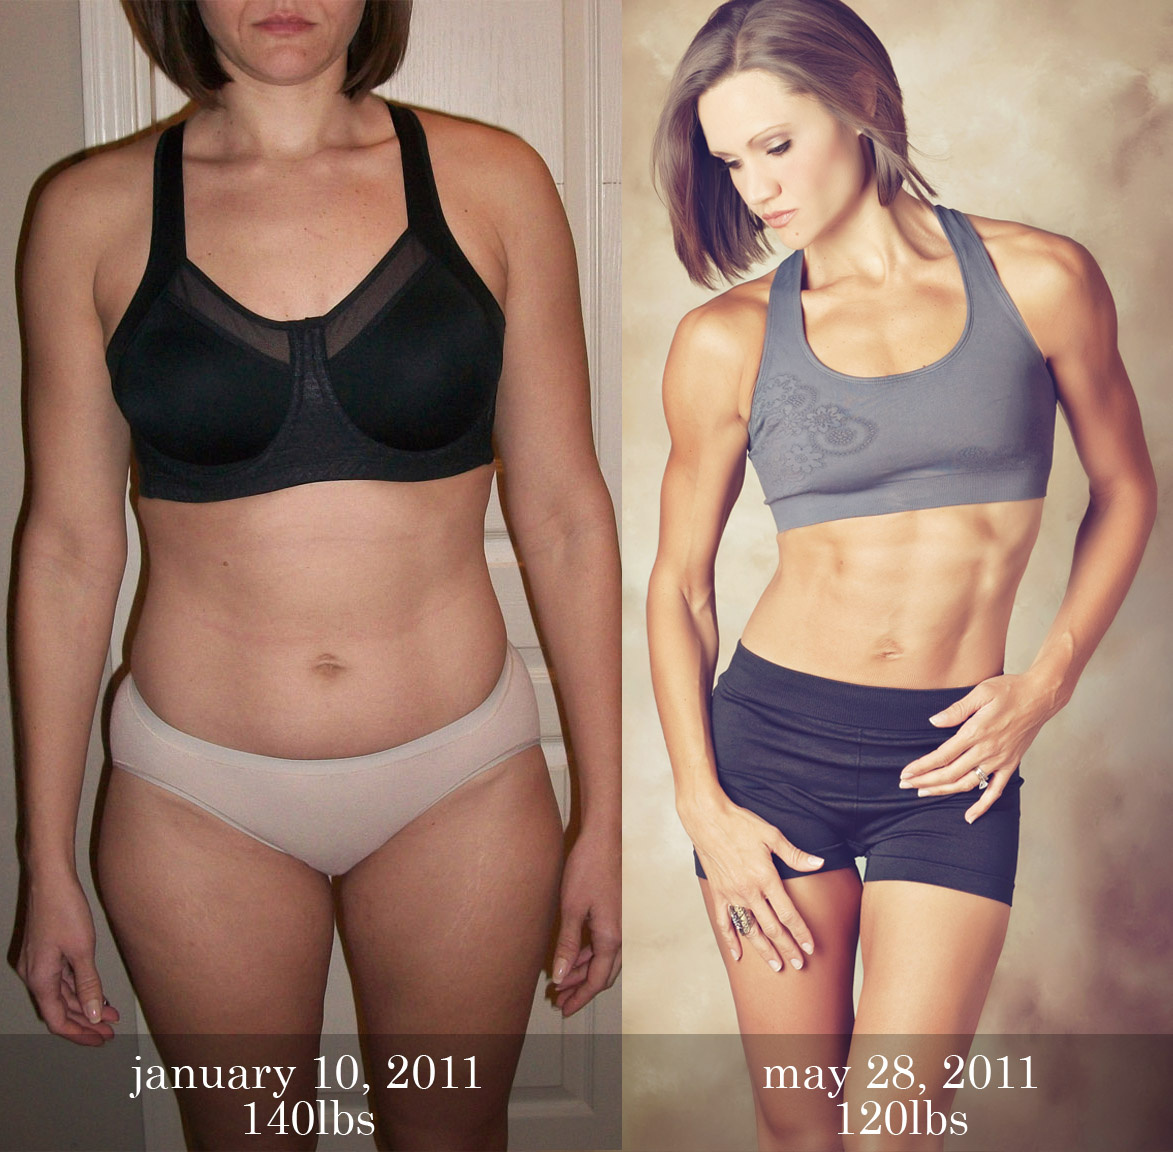 Lose 10 lbs water weight 3 days